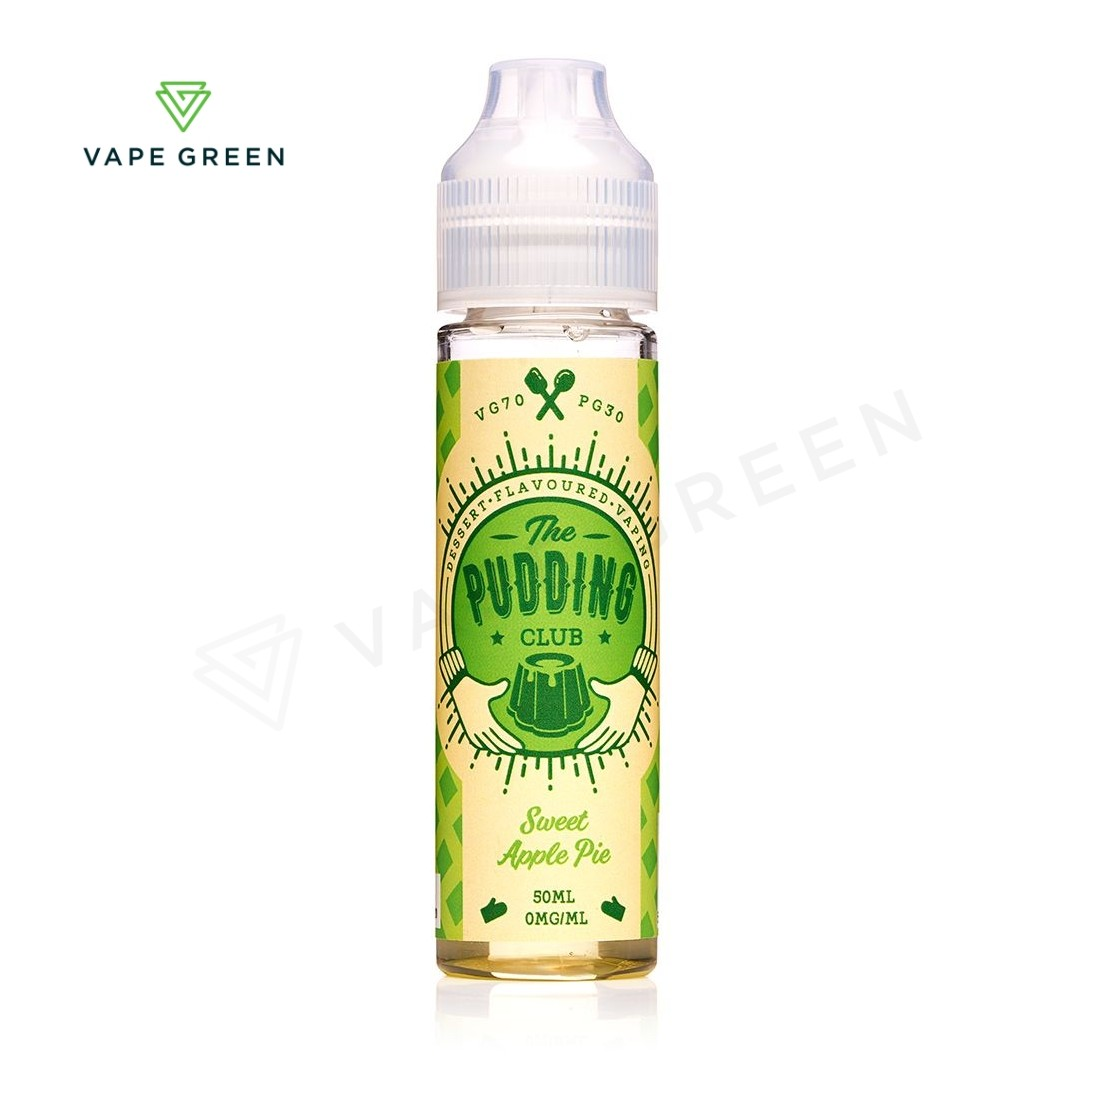 Sweet Apple Pie eLiquid by The Pudding Club 50ml